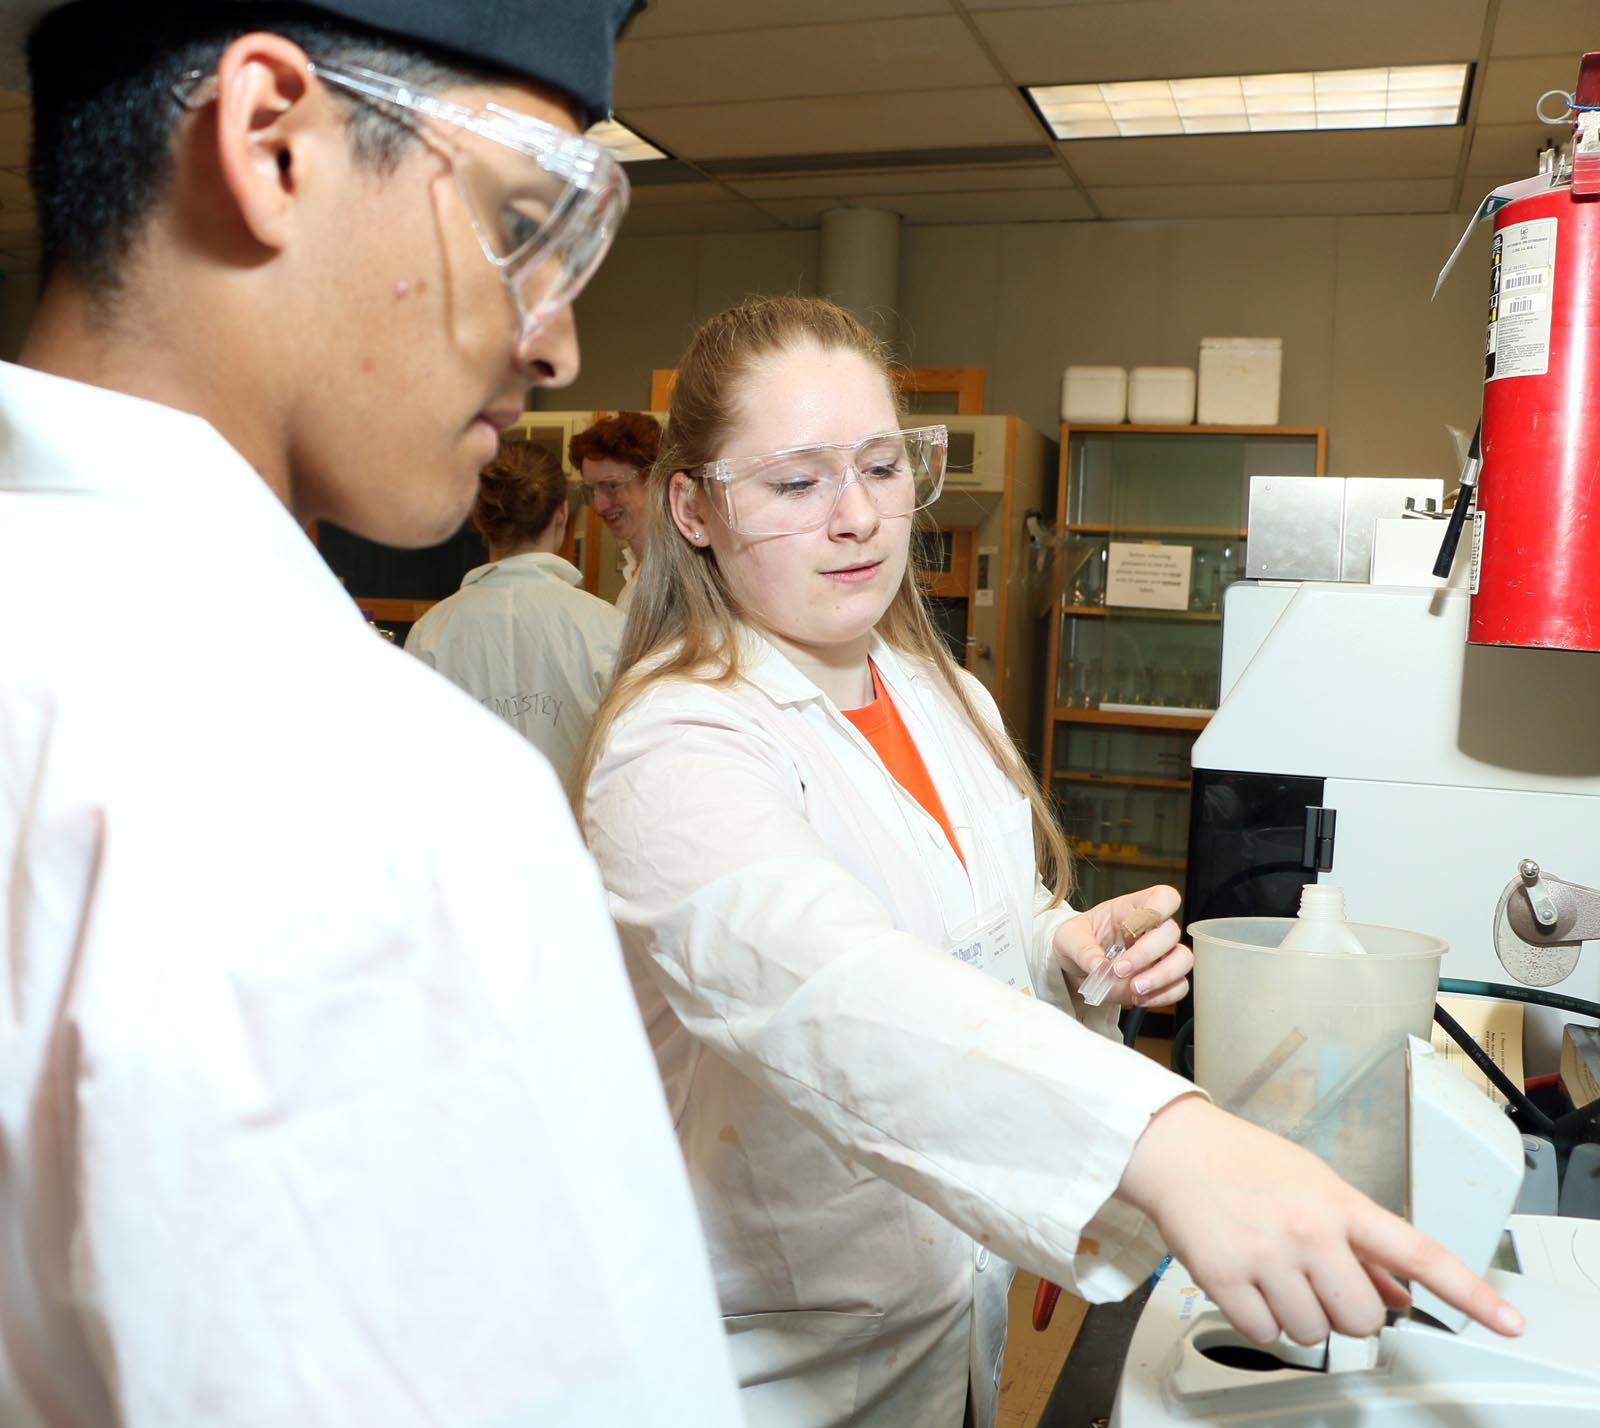 Lacey Banman, a fourth-year Bachelor of Science student majoring in chemistry and math, helps a visiting student.